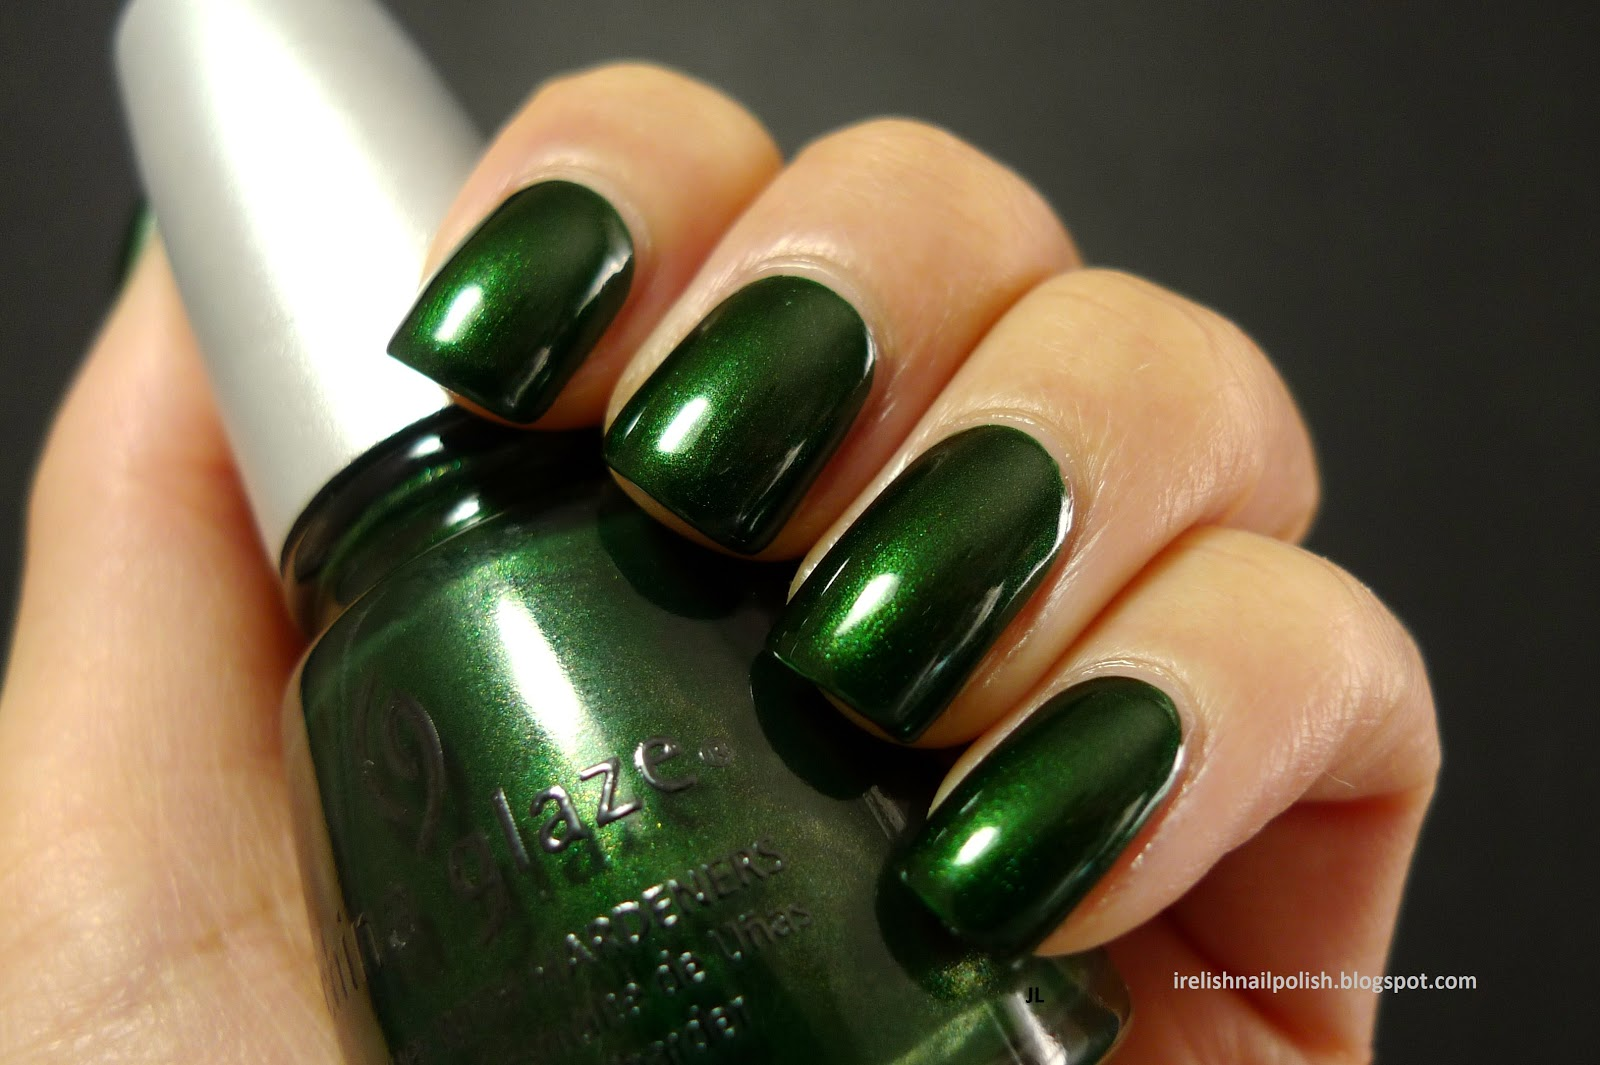 I relish nail polish china glaze jolly holly i relish nail polish nvjuhfo Gallery